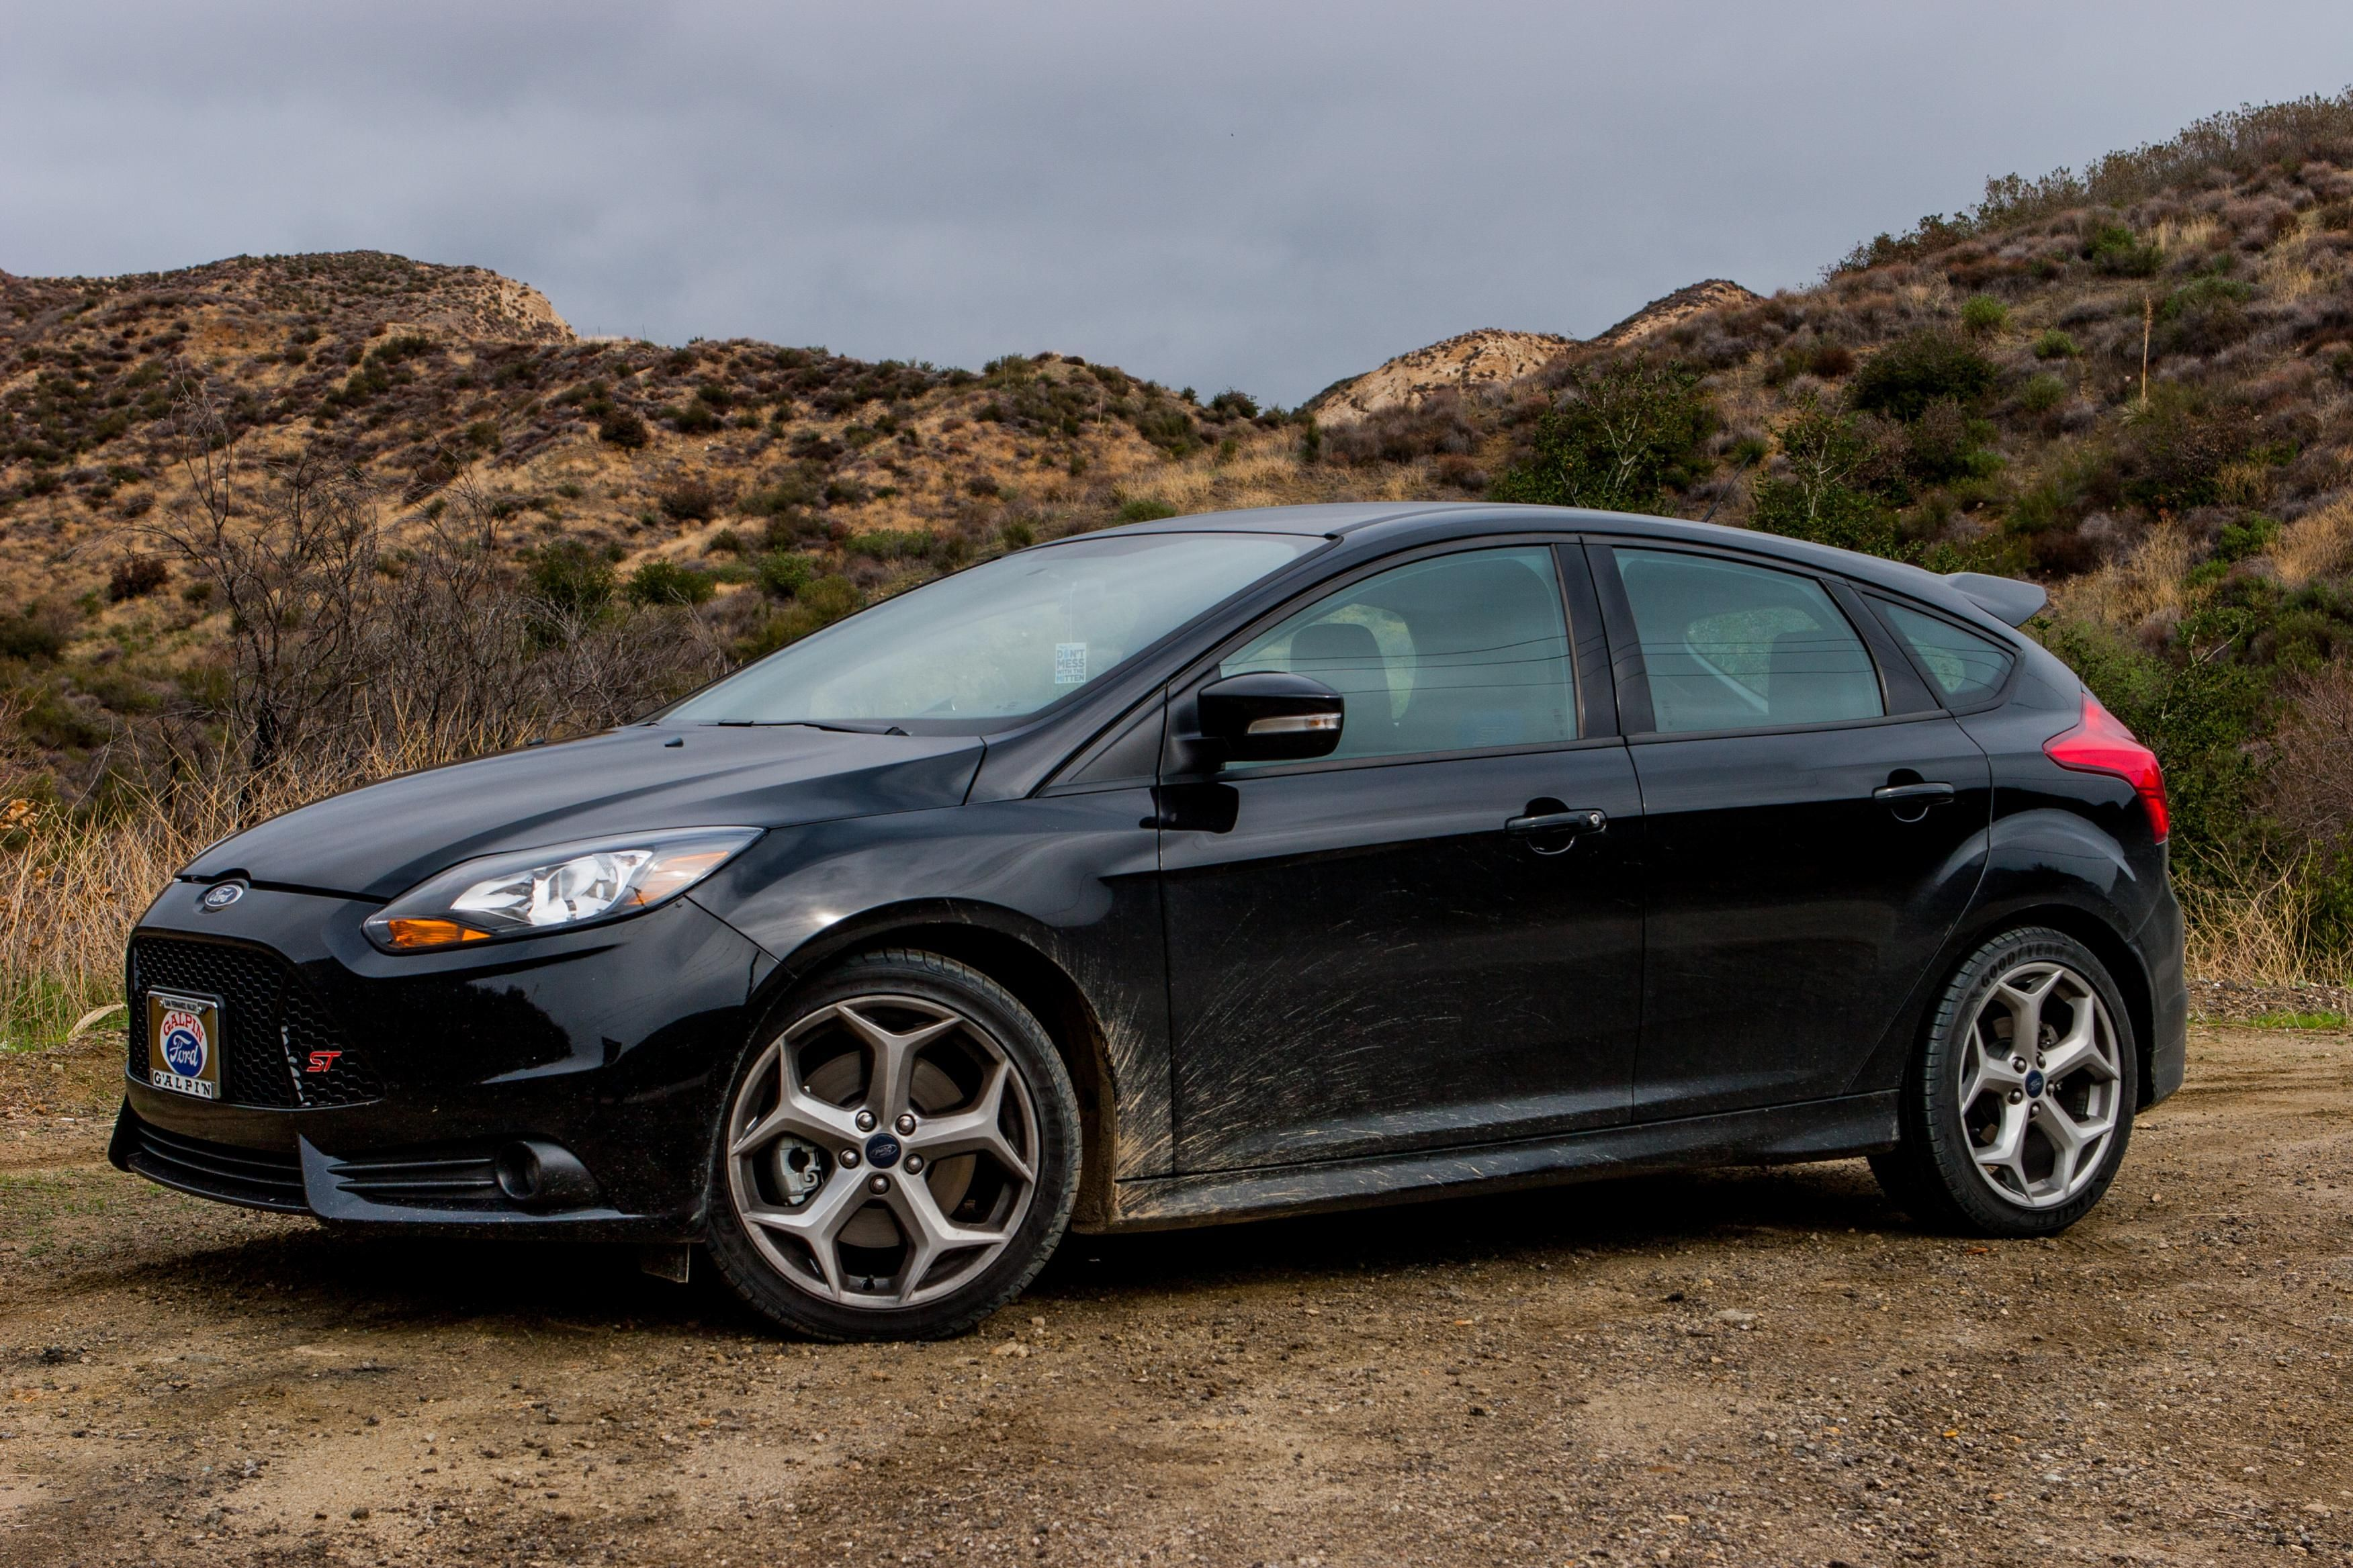 2016 Ford Focus Review Price Release Date Msrp 0 60 Ford